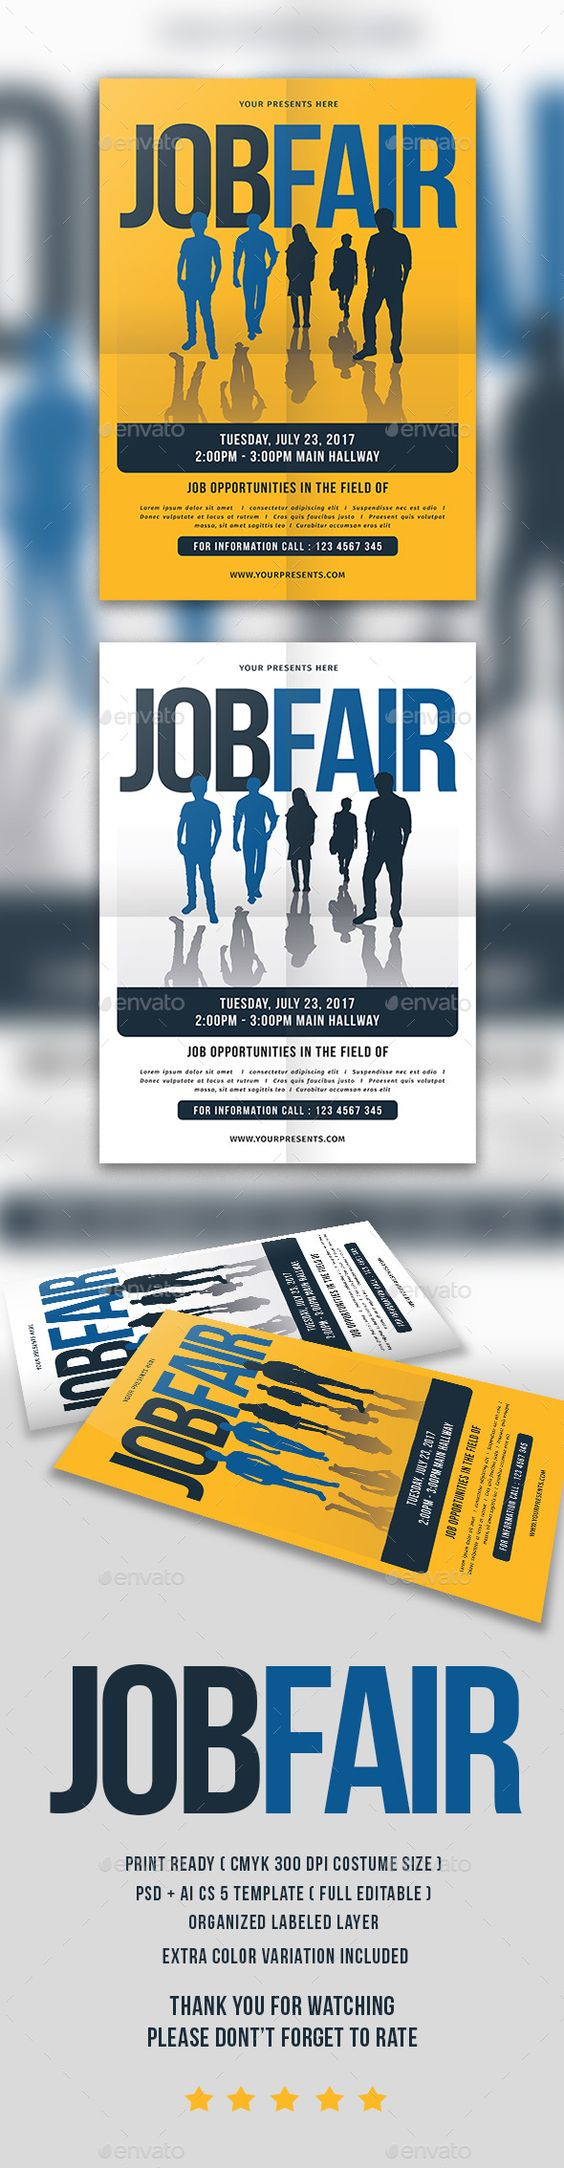 job fair flyer flyers design templates and flyer design job fair flyer design template flyers print templates psd ai illustrator here